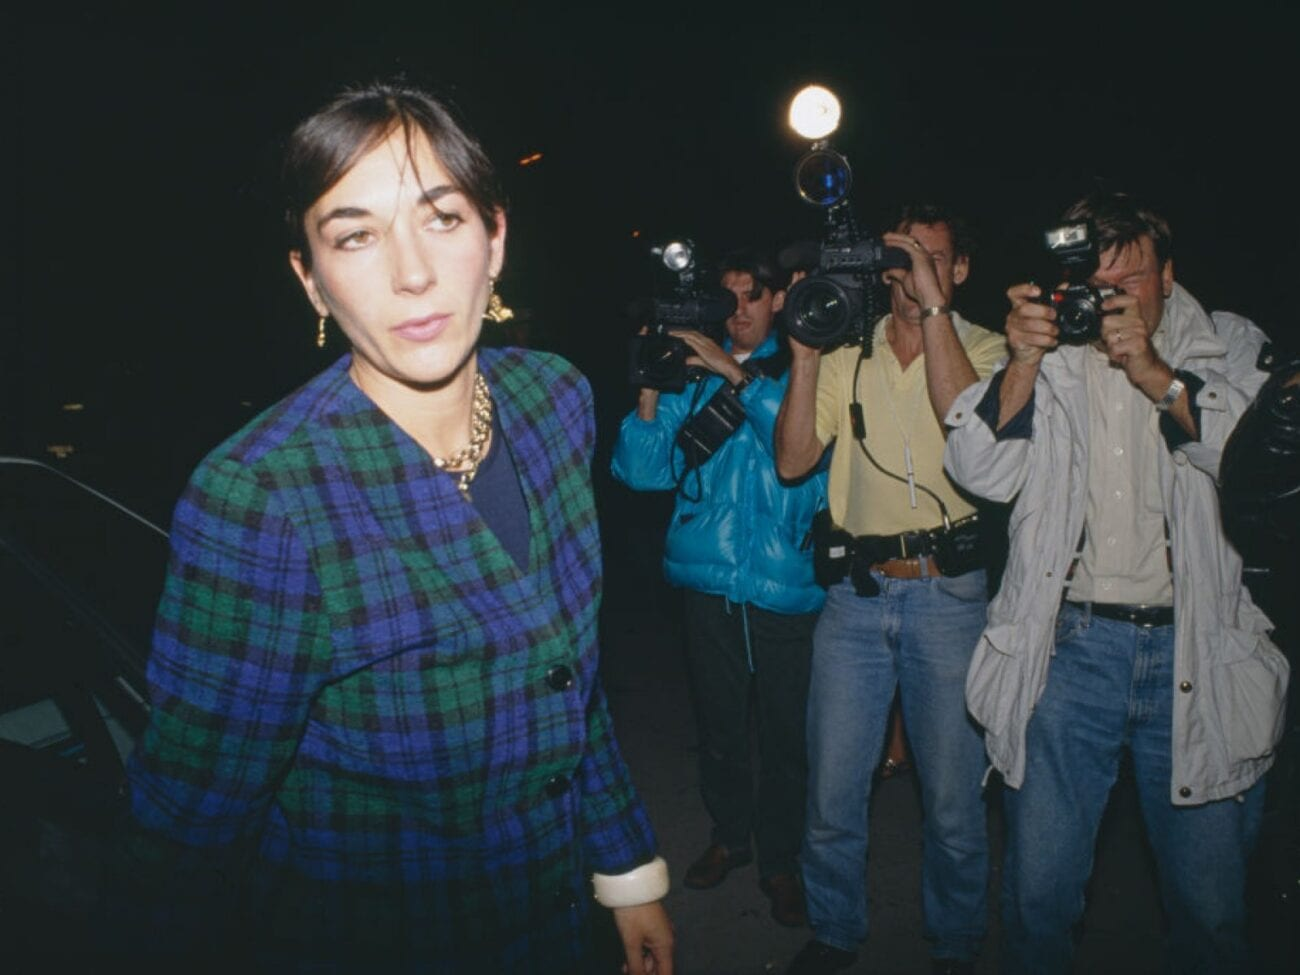 Ghislaine Maxwell lived a glamorous life in her elite social circles. How has Maxwell's look changed now that she faces sex-trafficking charges?